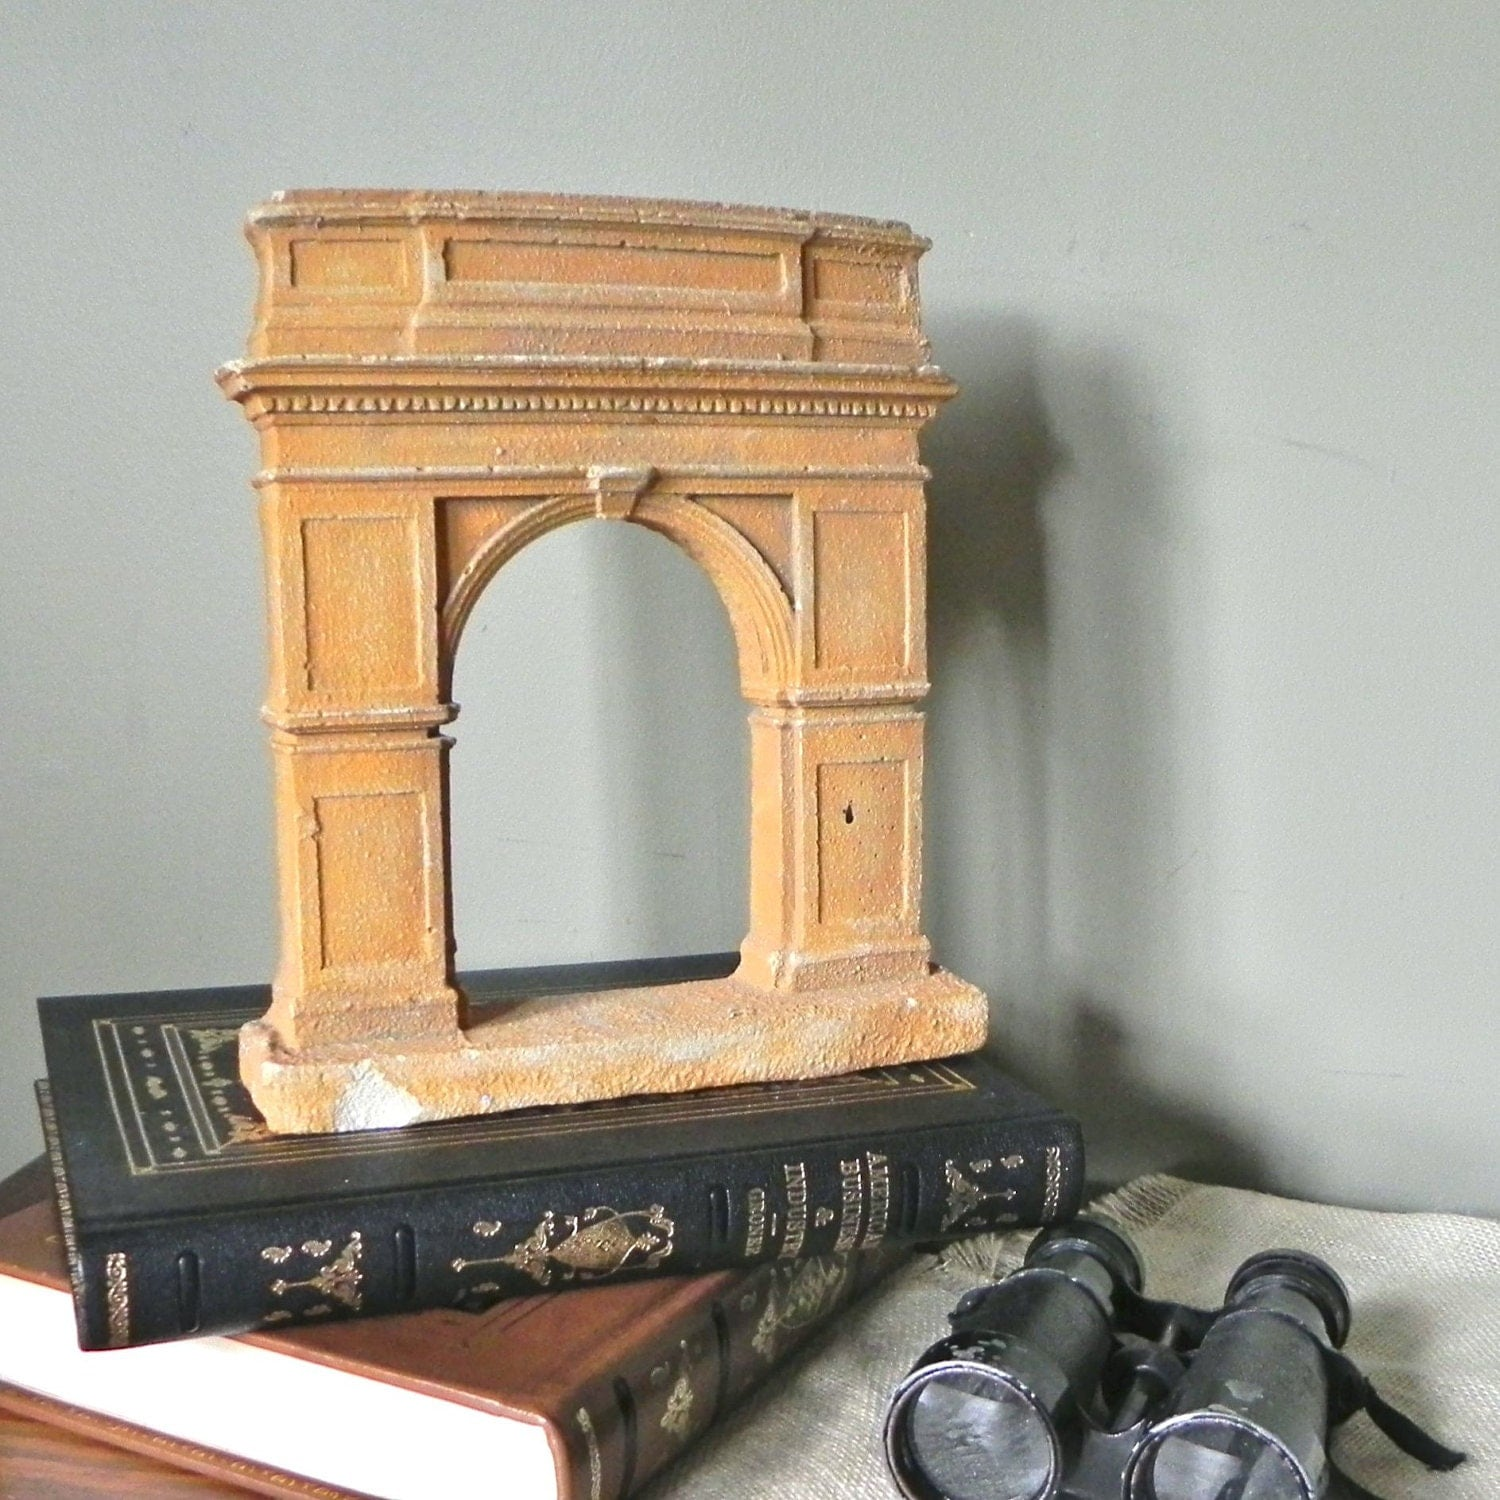 RESV s333 Vintage home decor sculpture L'arc de by jollytimeone